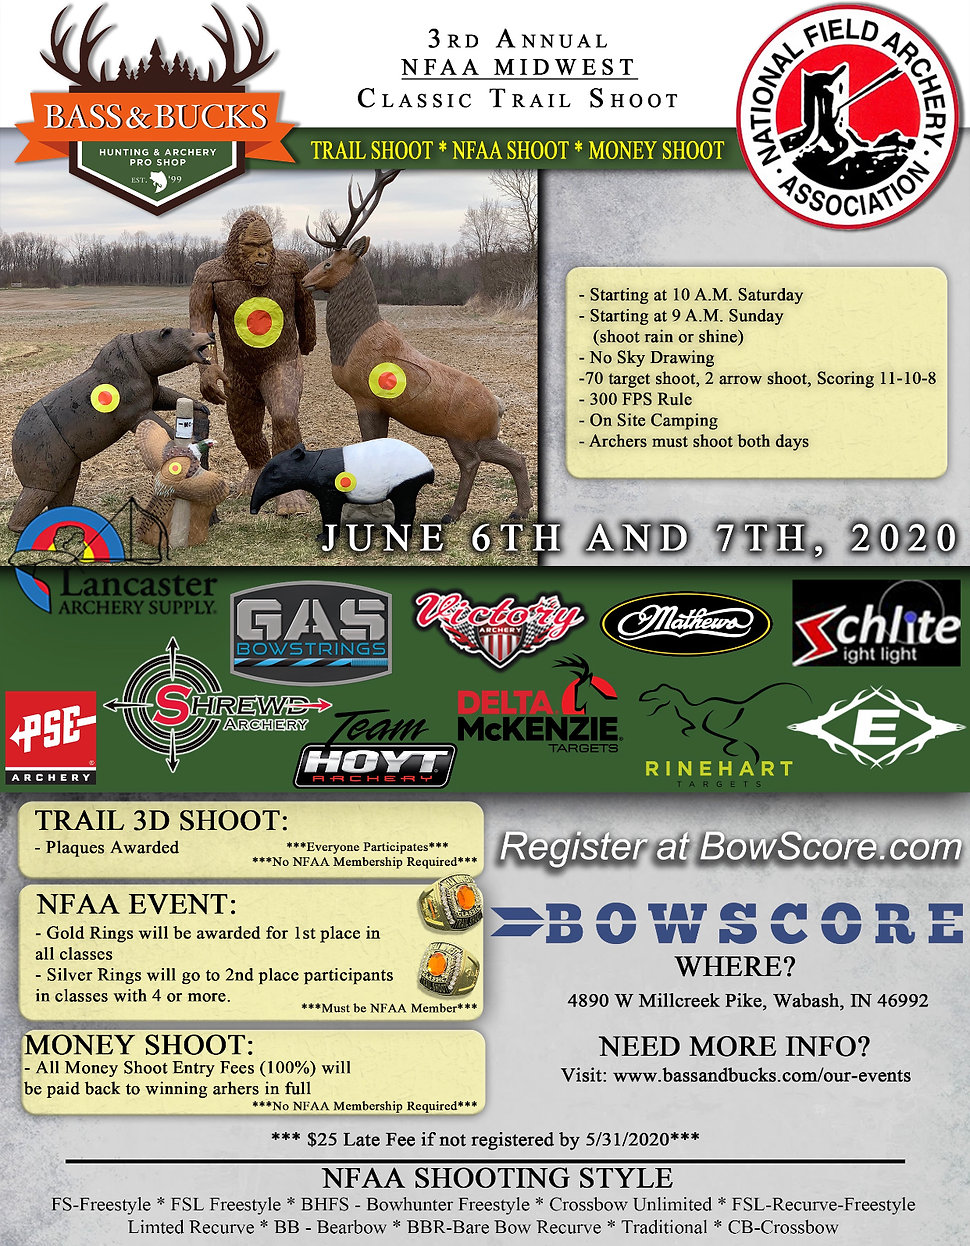 NFAA Midwest CLassic Trail Shoot FLyer 5